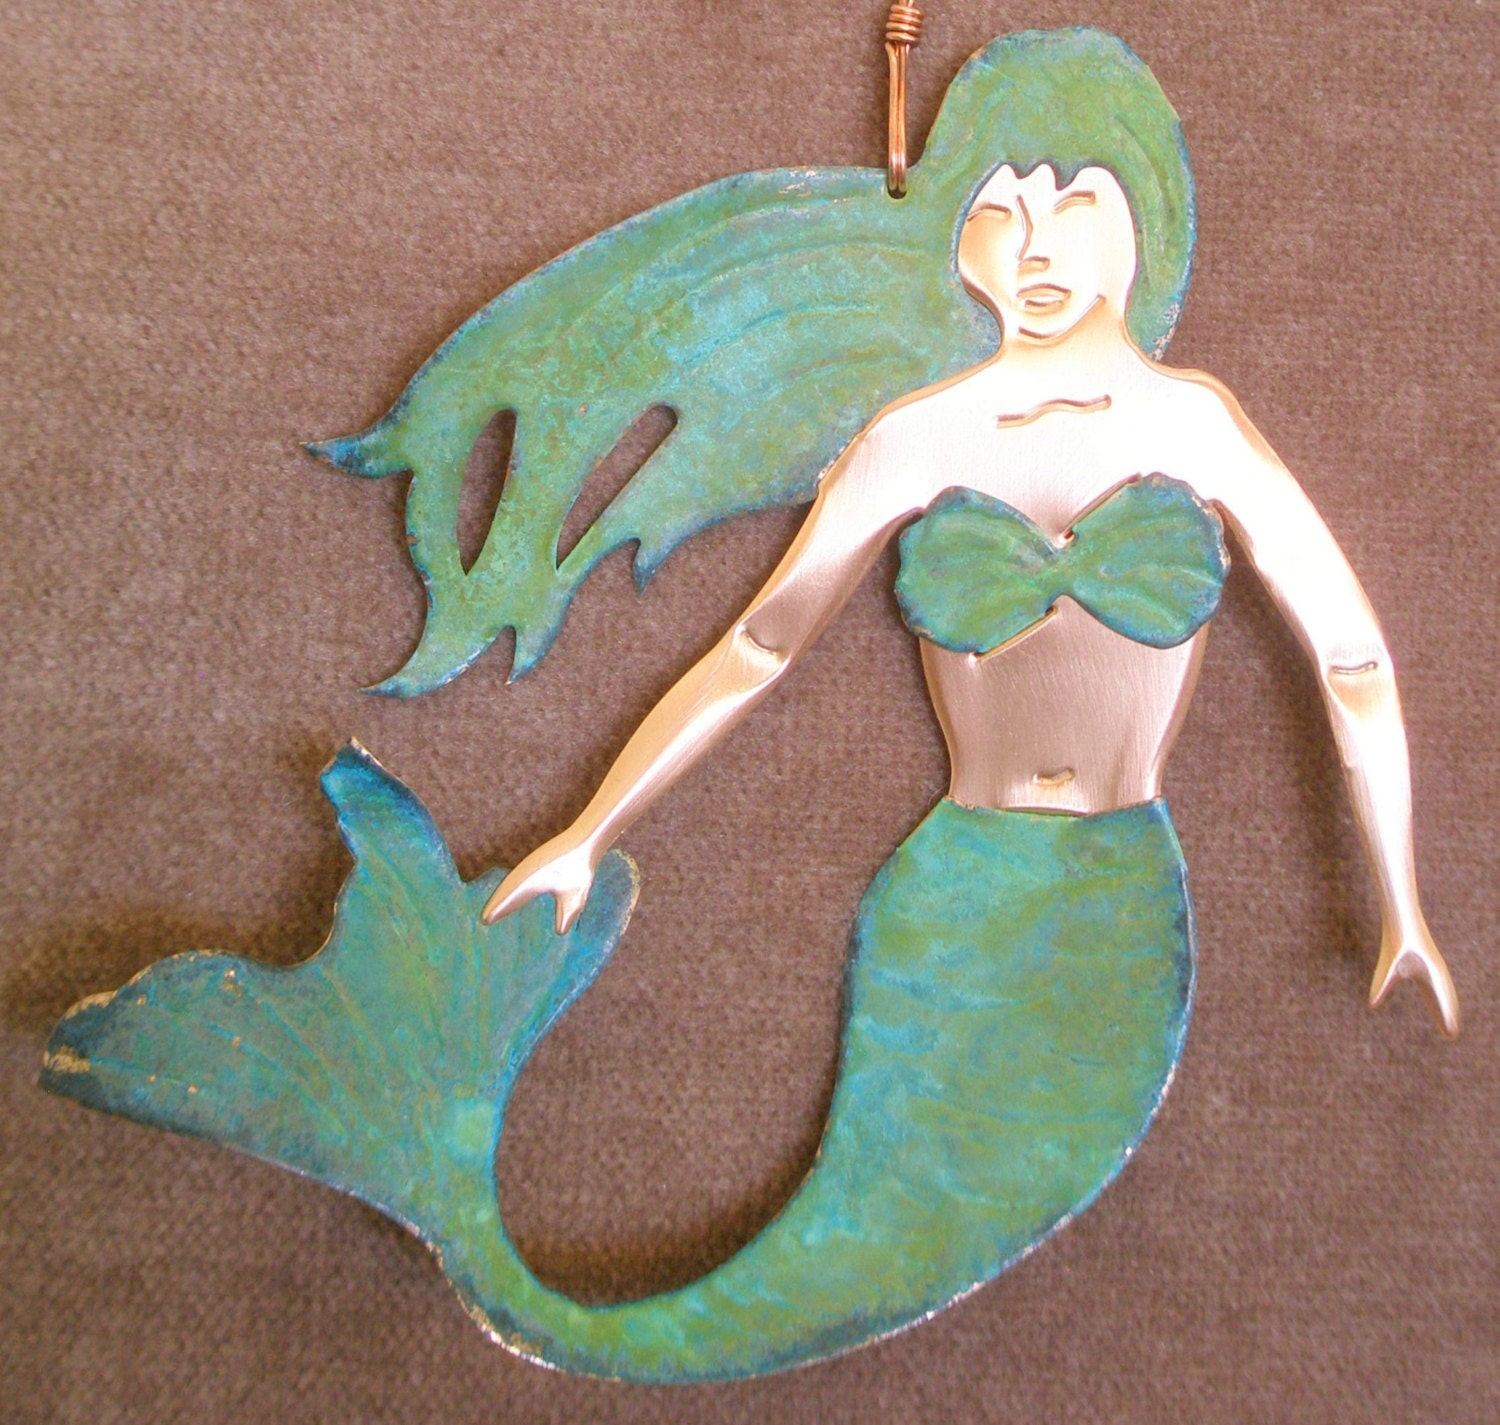 MERMAID Copper Verdigris Ornament - Handcrafted in The Copper State (Arizona USA)